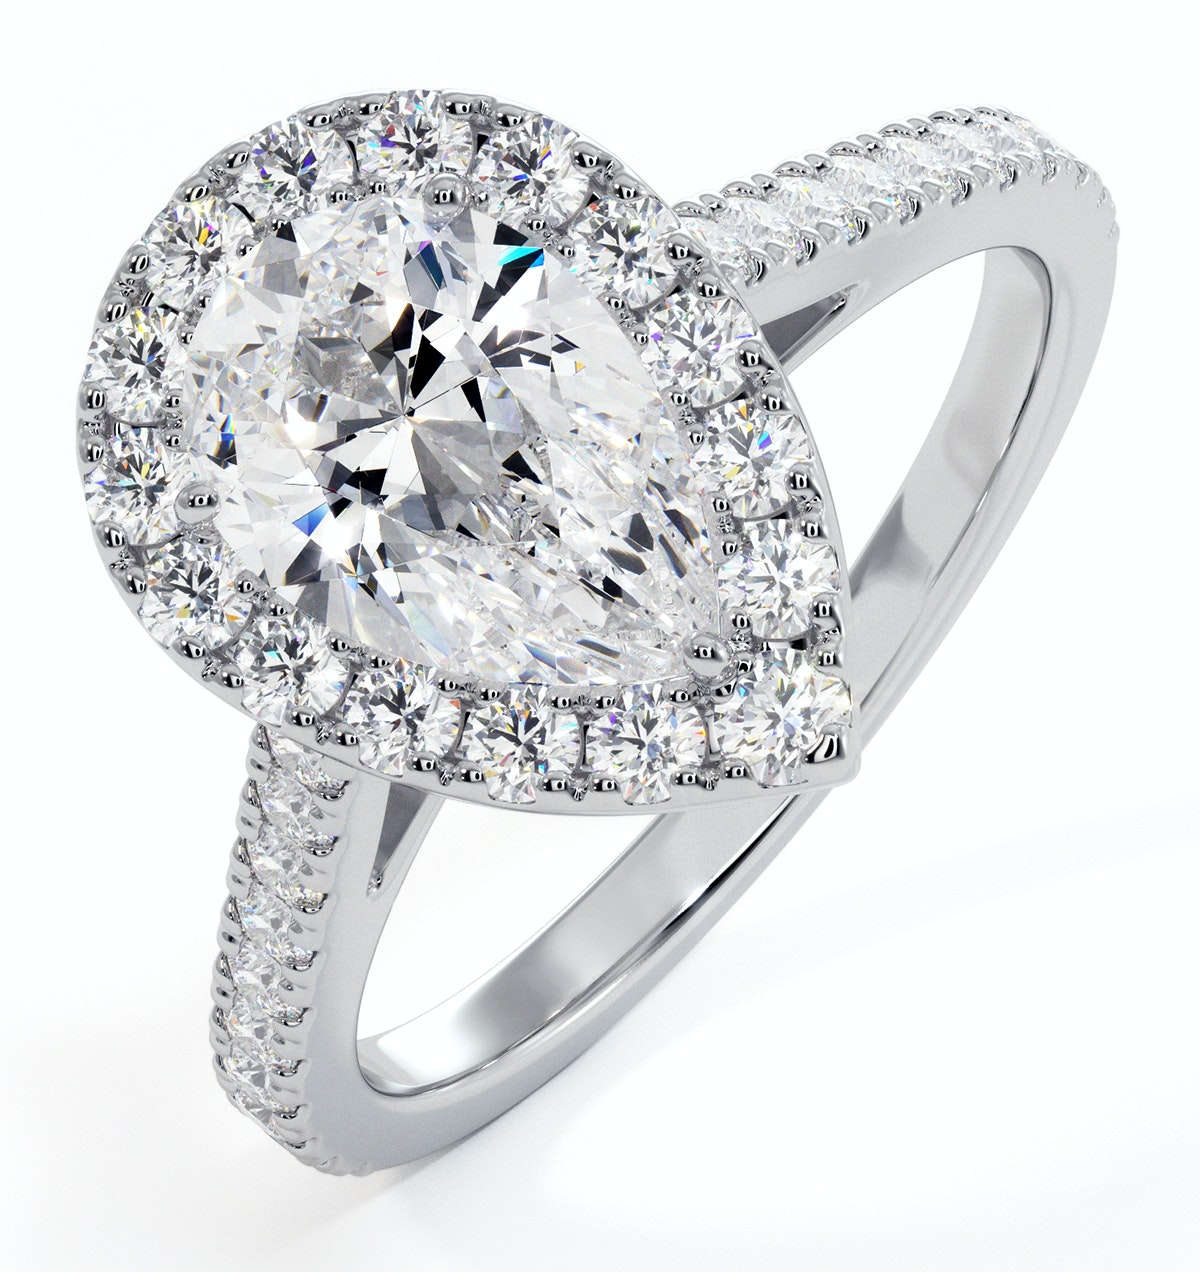 Diana GIA Diamond Pear Halo Engagement Ring 18KW Gold 1.60ct G/SI1